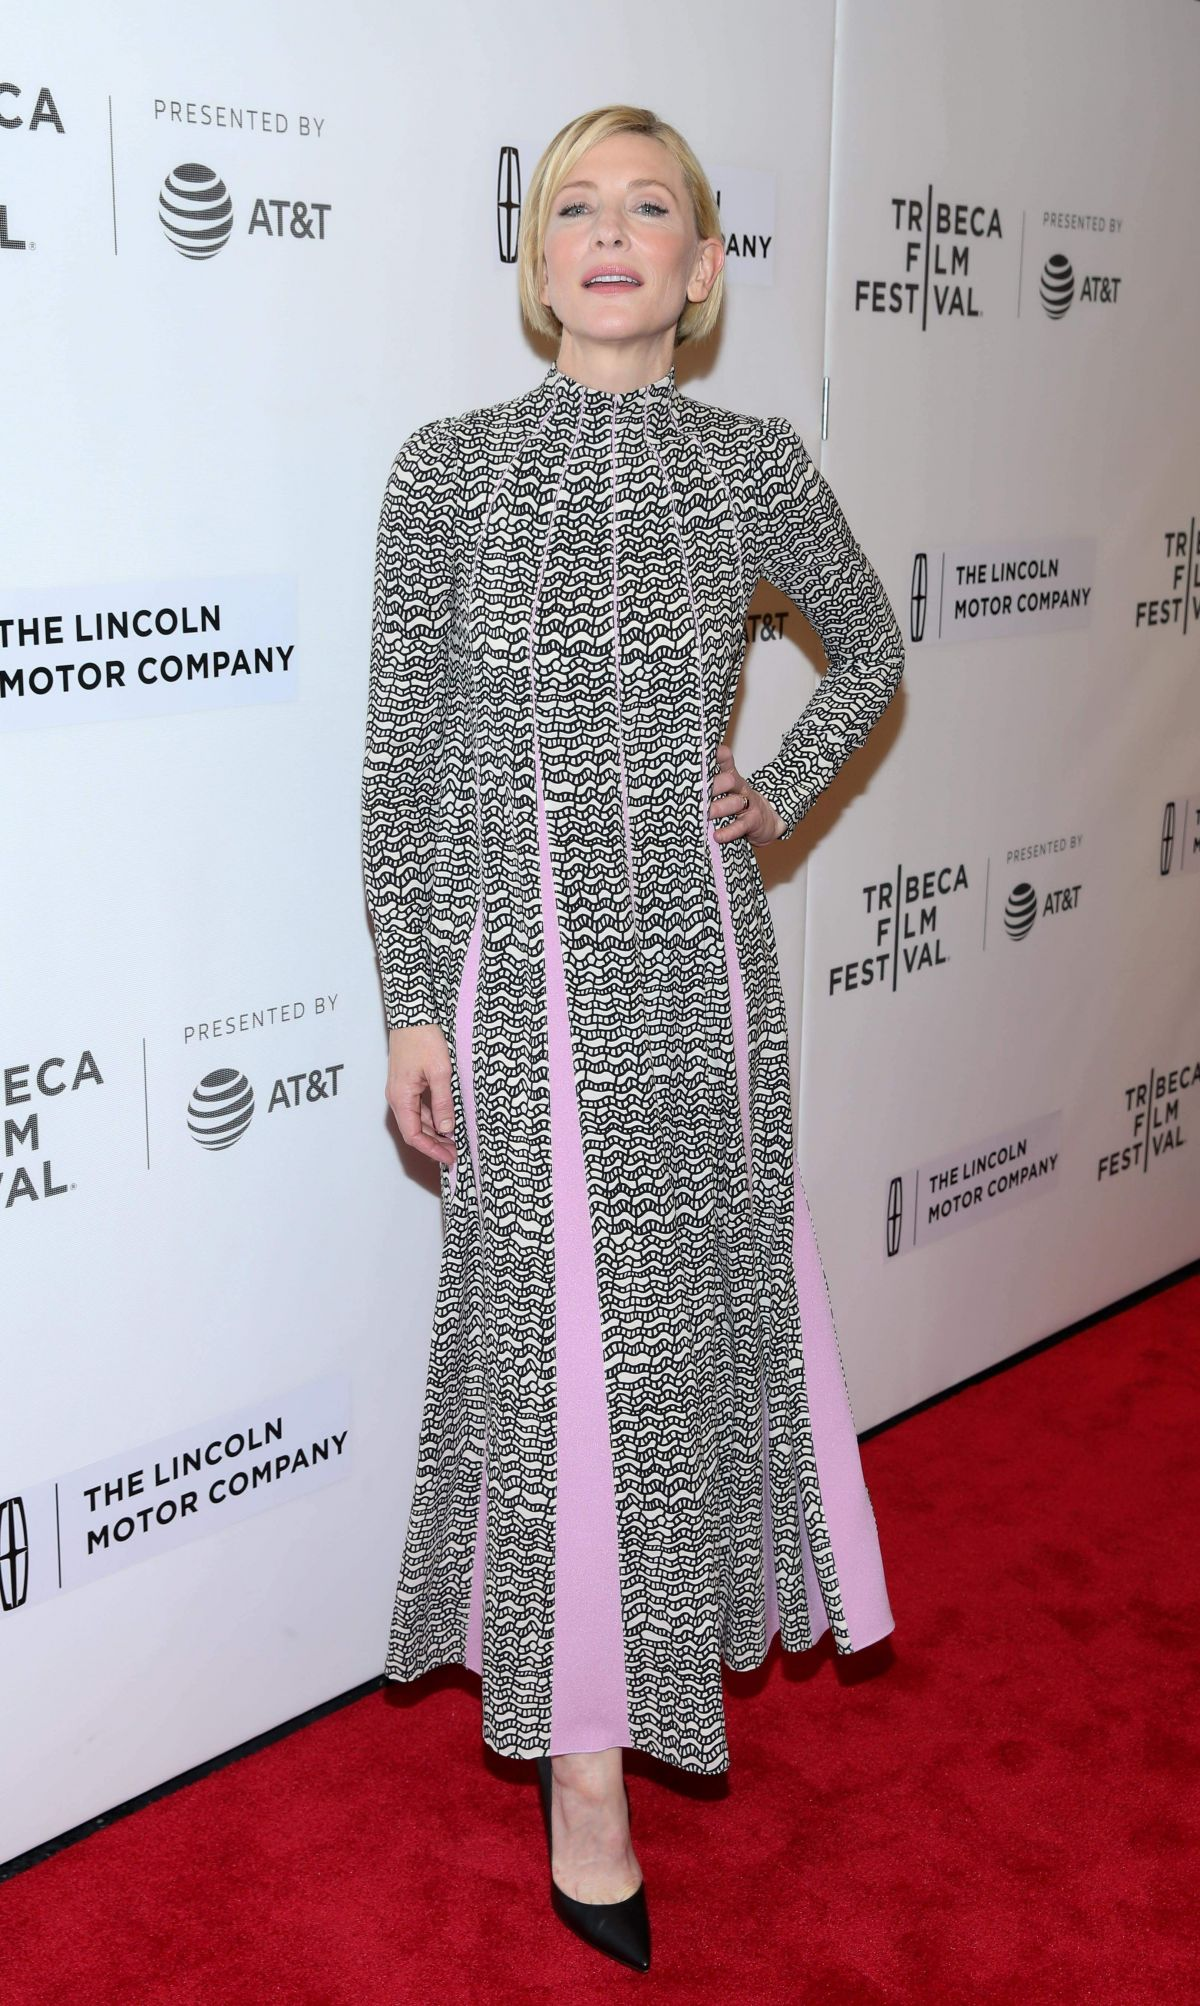 Cate Blanchett At Premiere of